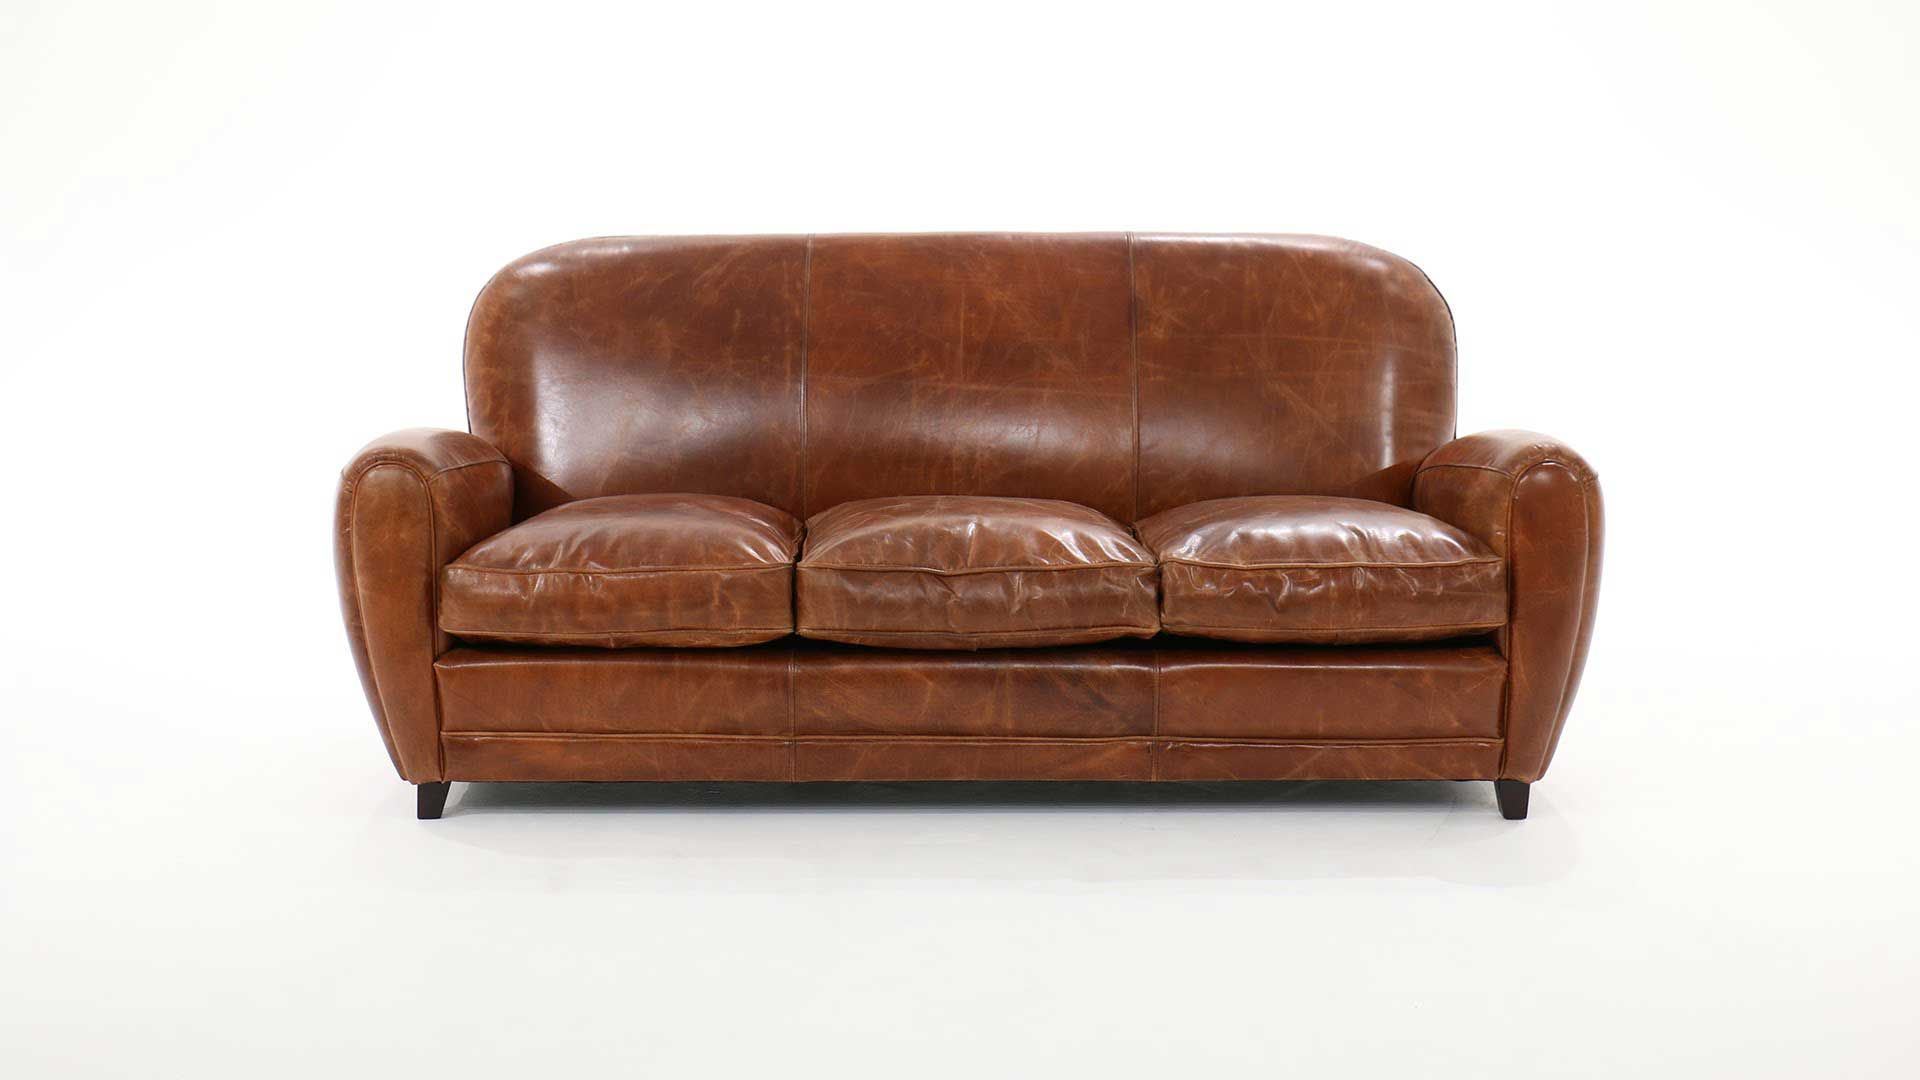 Cuir Salon Buffle Cana Places Chesterfield Vintage Convertible